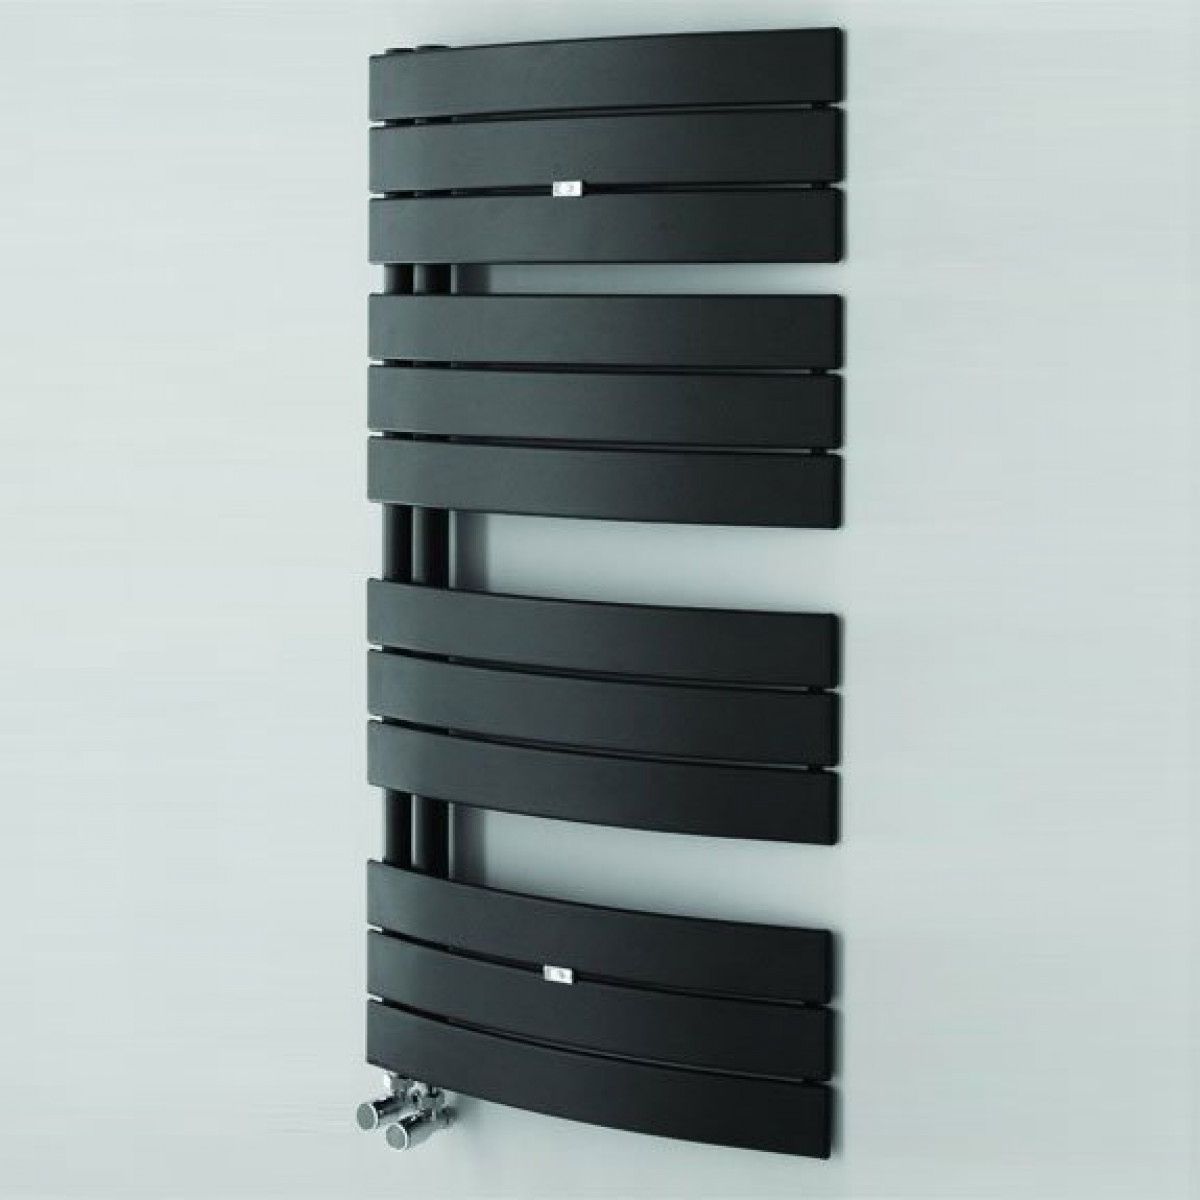 Ideal Essential, Aries Towel Warmer, Anthracite Finish -